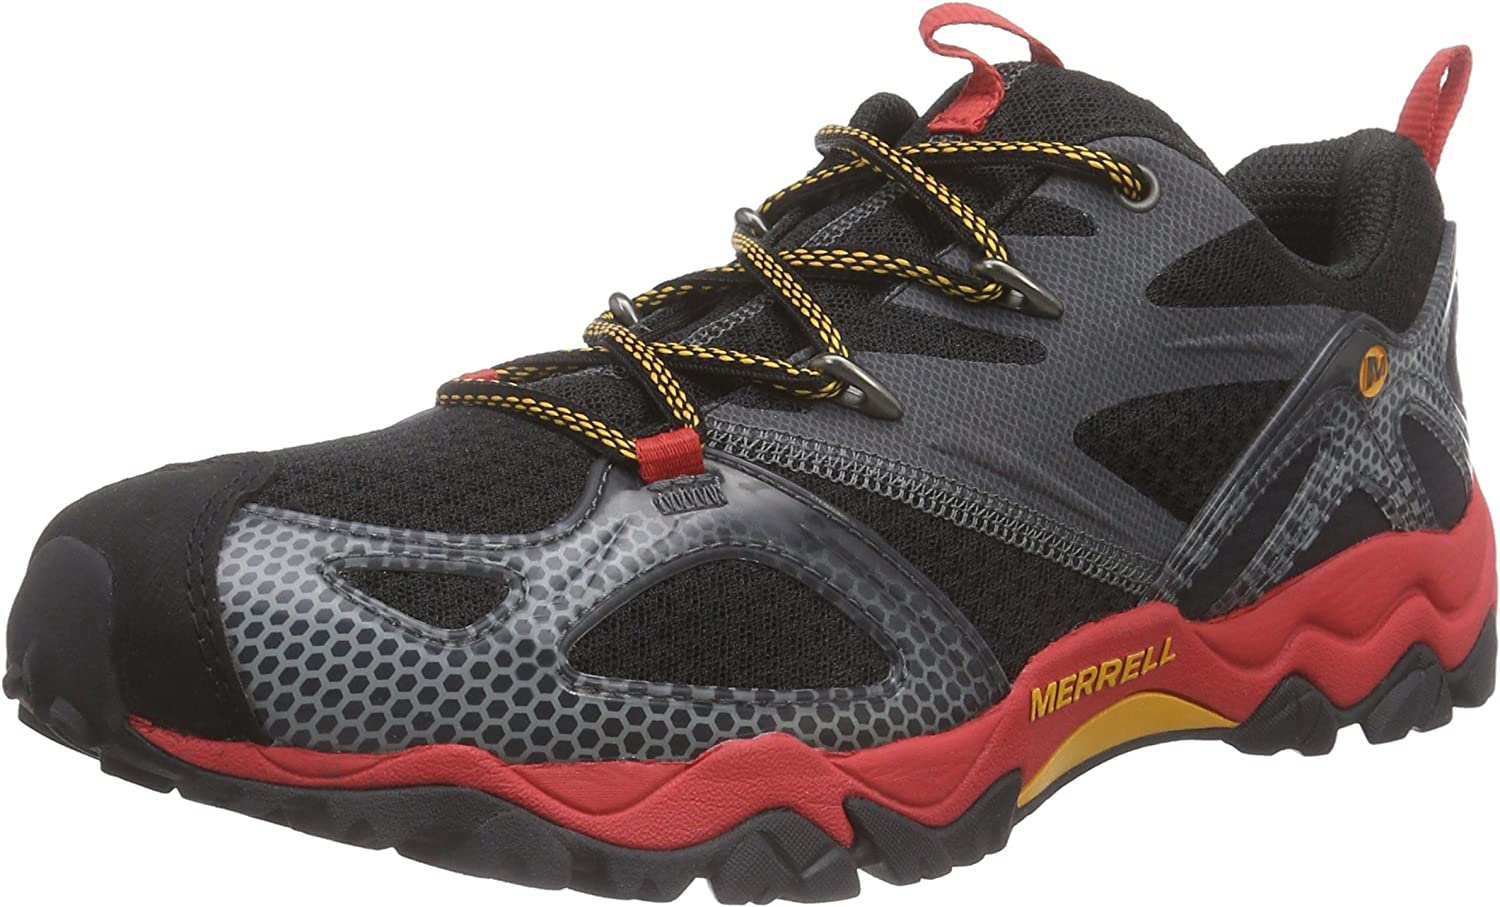 Merrell Men's Grassbow Rider Low Rise Hiking shoes